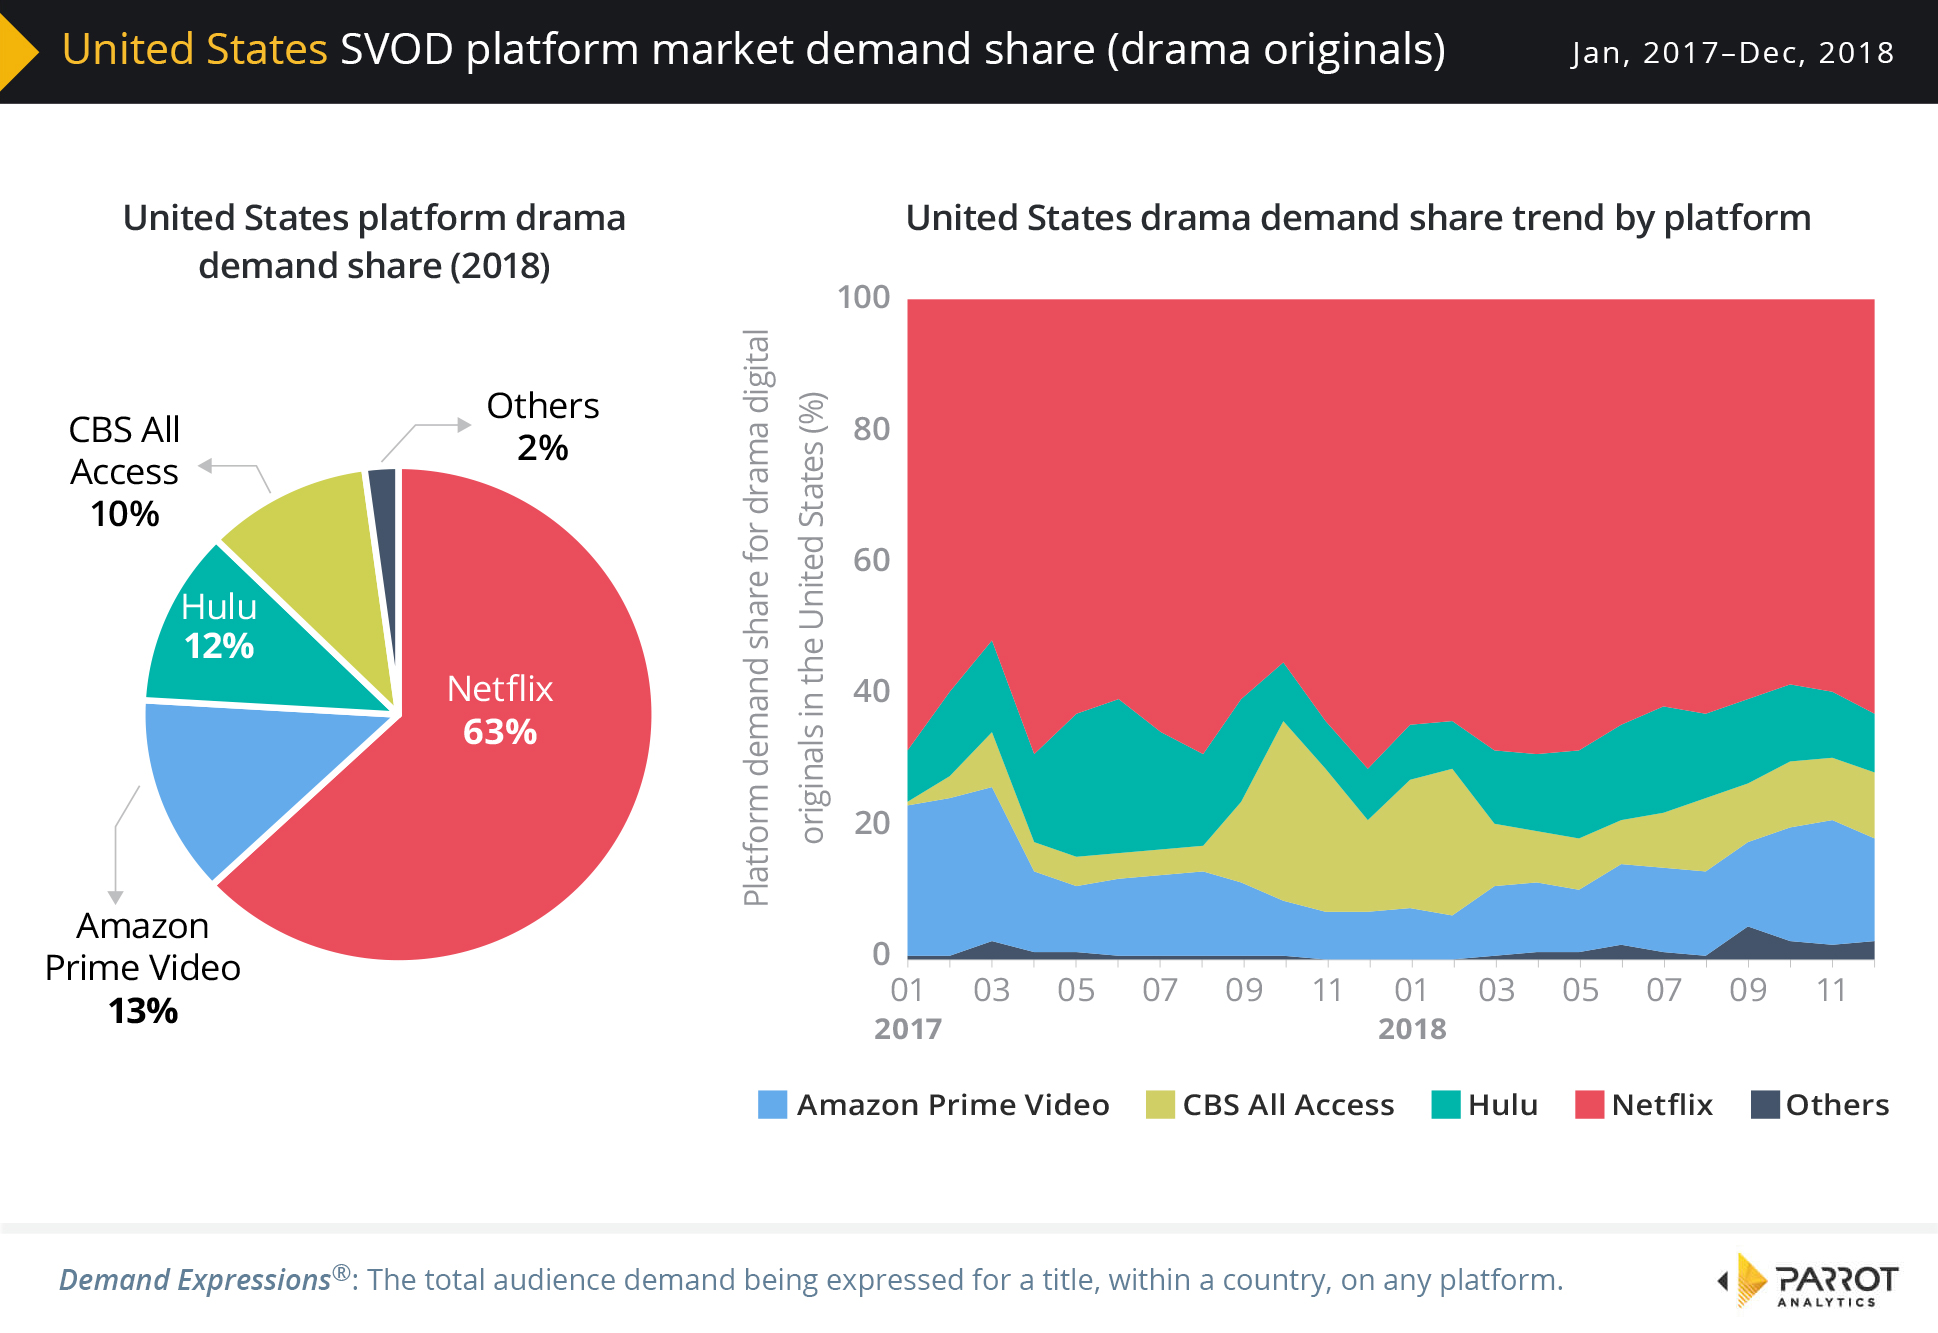 United States SVOD market share trends based on audience demand for